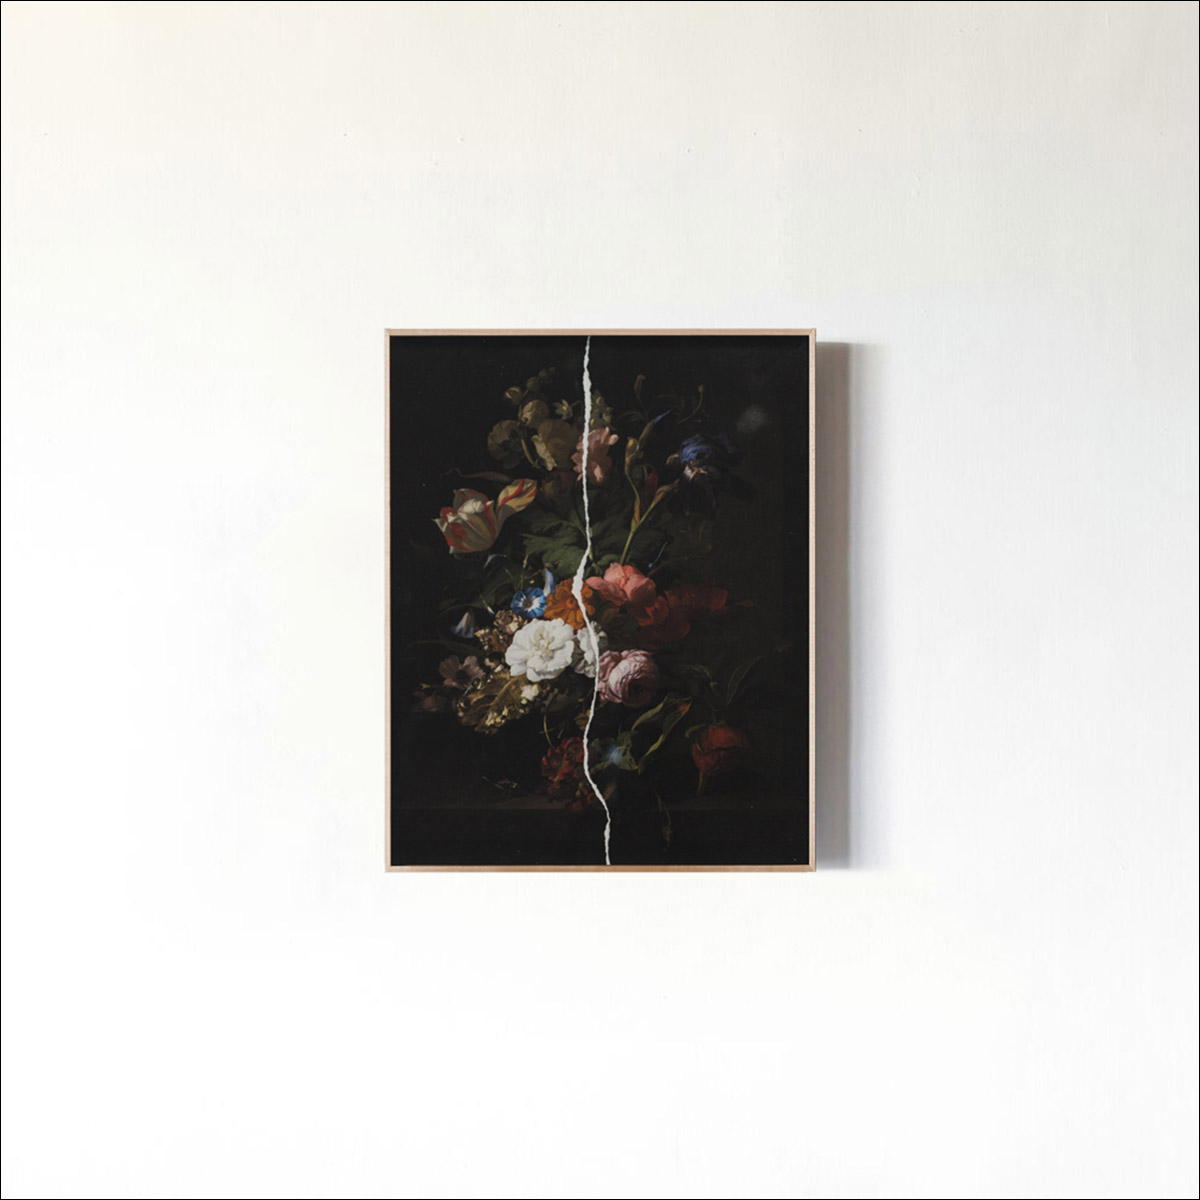 Synograph of _Ripped Flowers_ by Public Domain